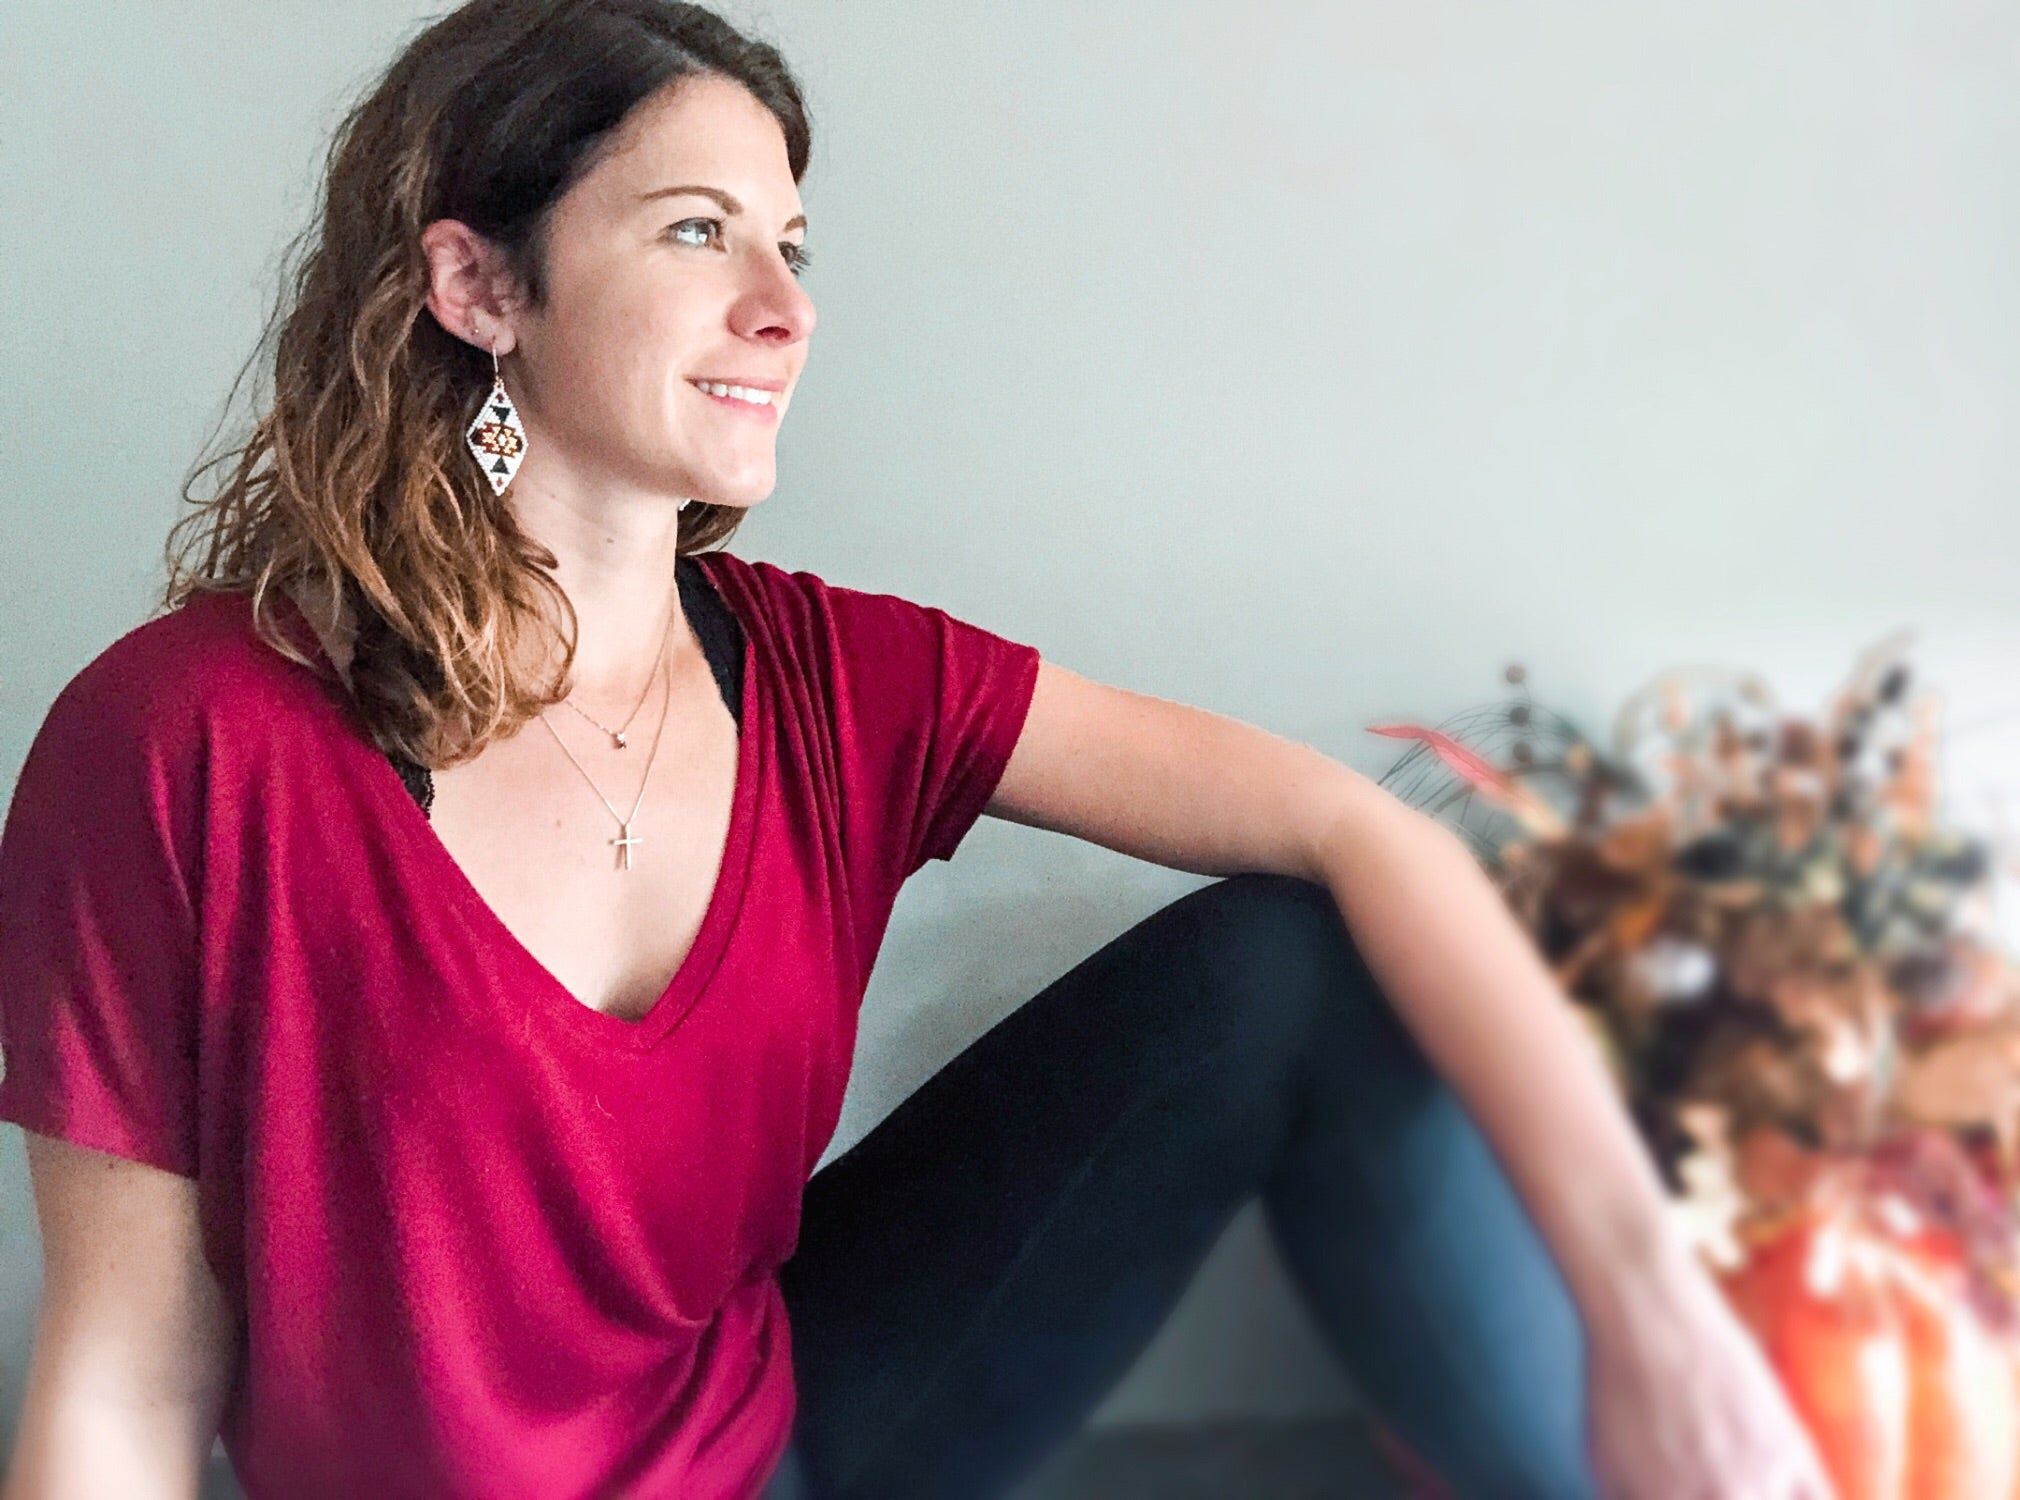 Cait wearing the sweater weather diamond I earrings, red top and black leggings